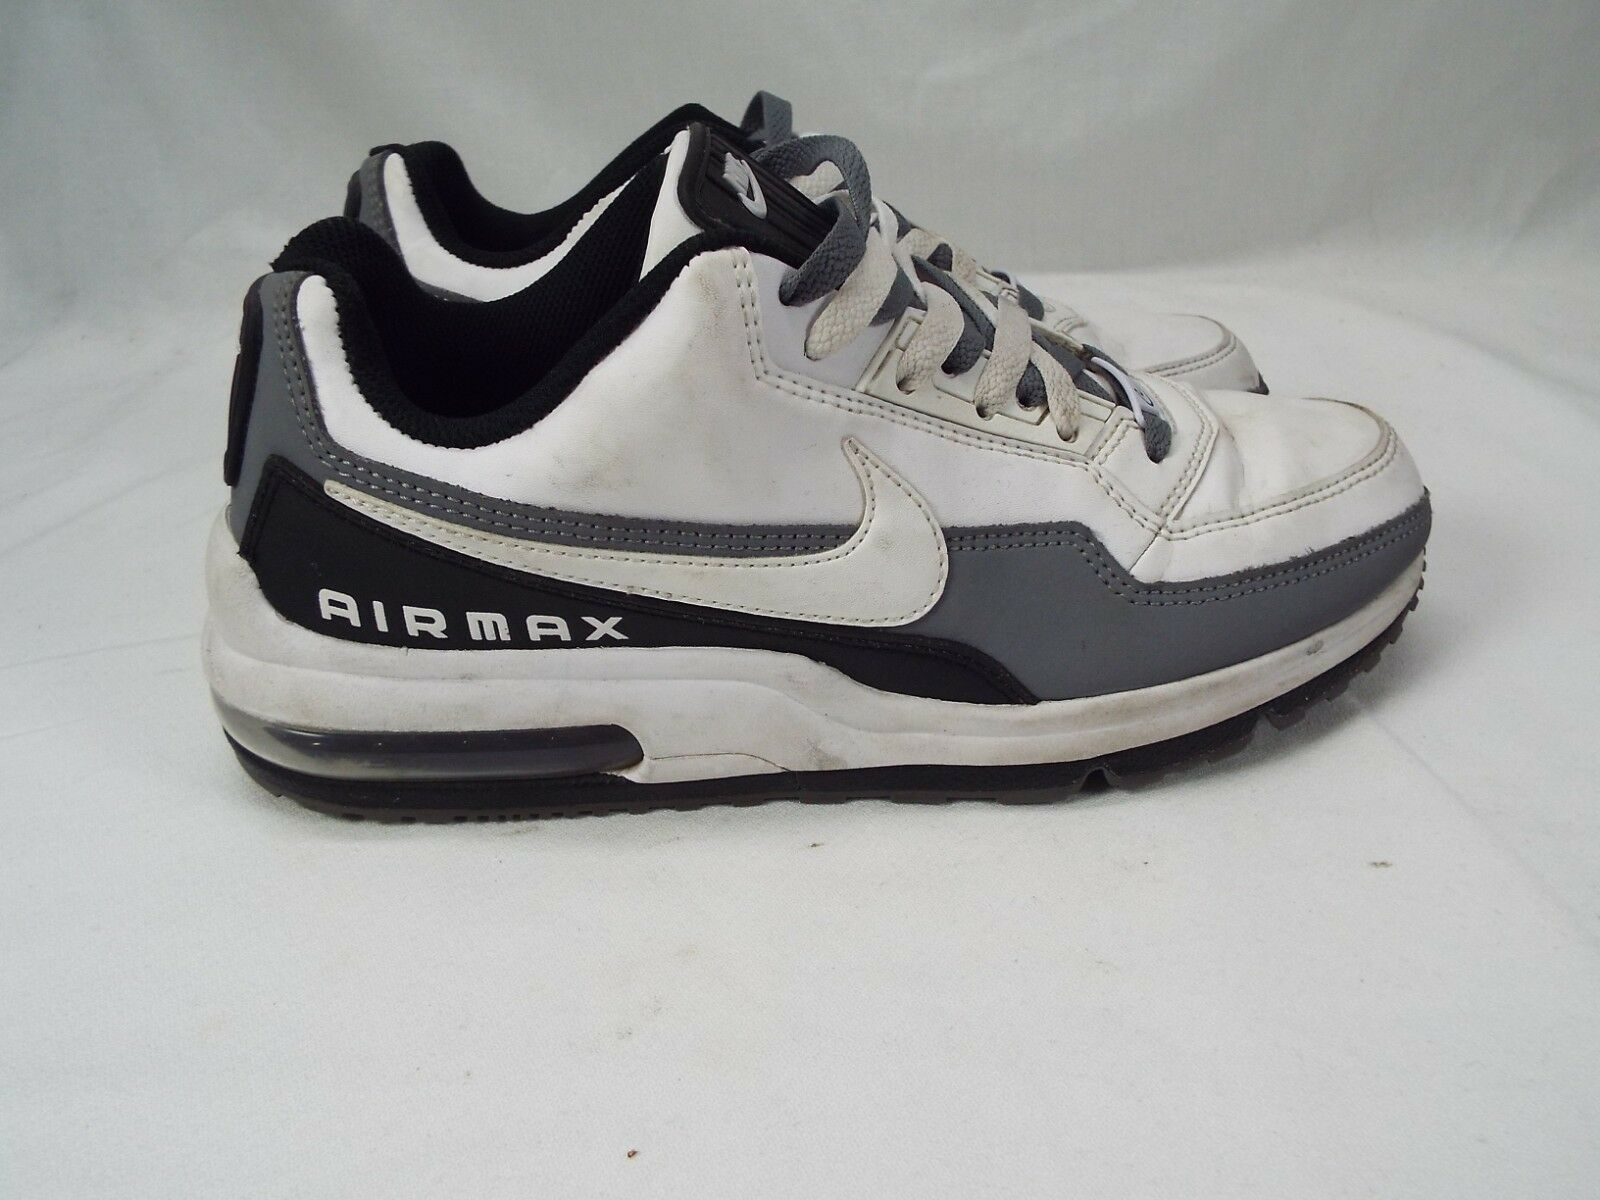 32102c8c4af Mens NIKE Air Max LTD Limited Limited Limited 3 Running Shoes Size 8.5  White Gray Black